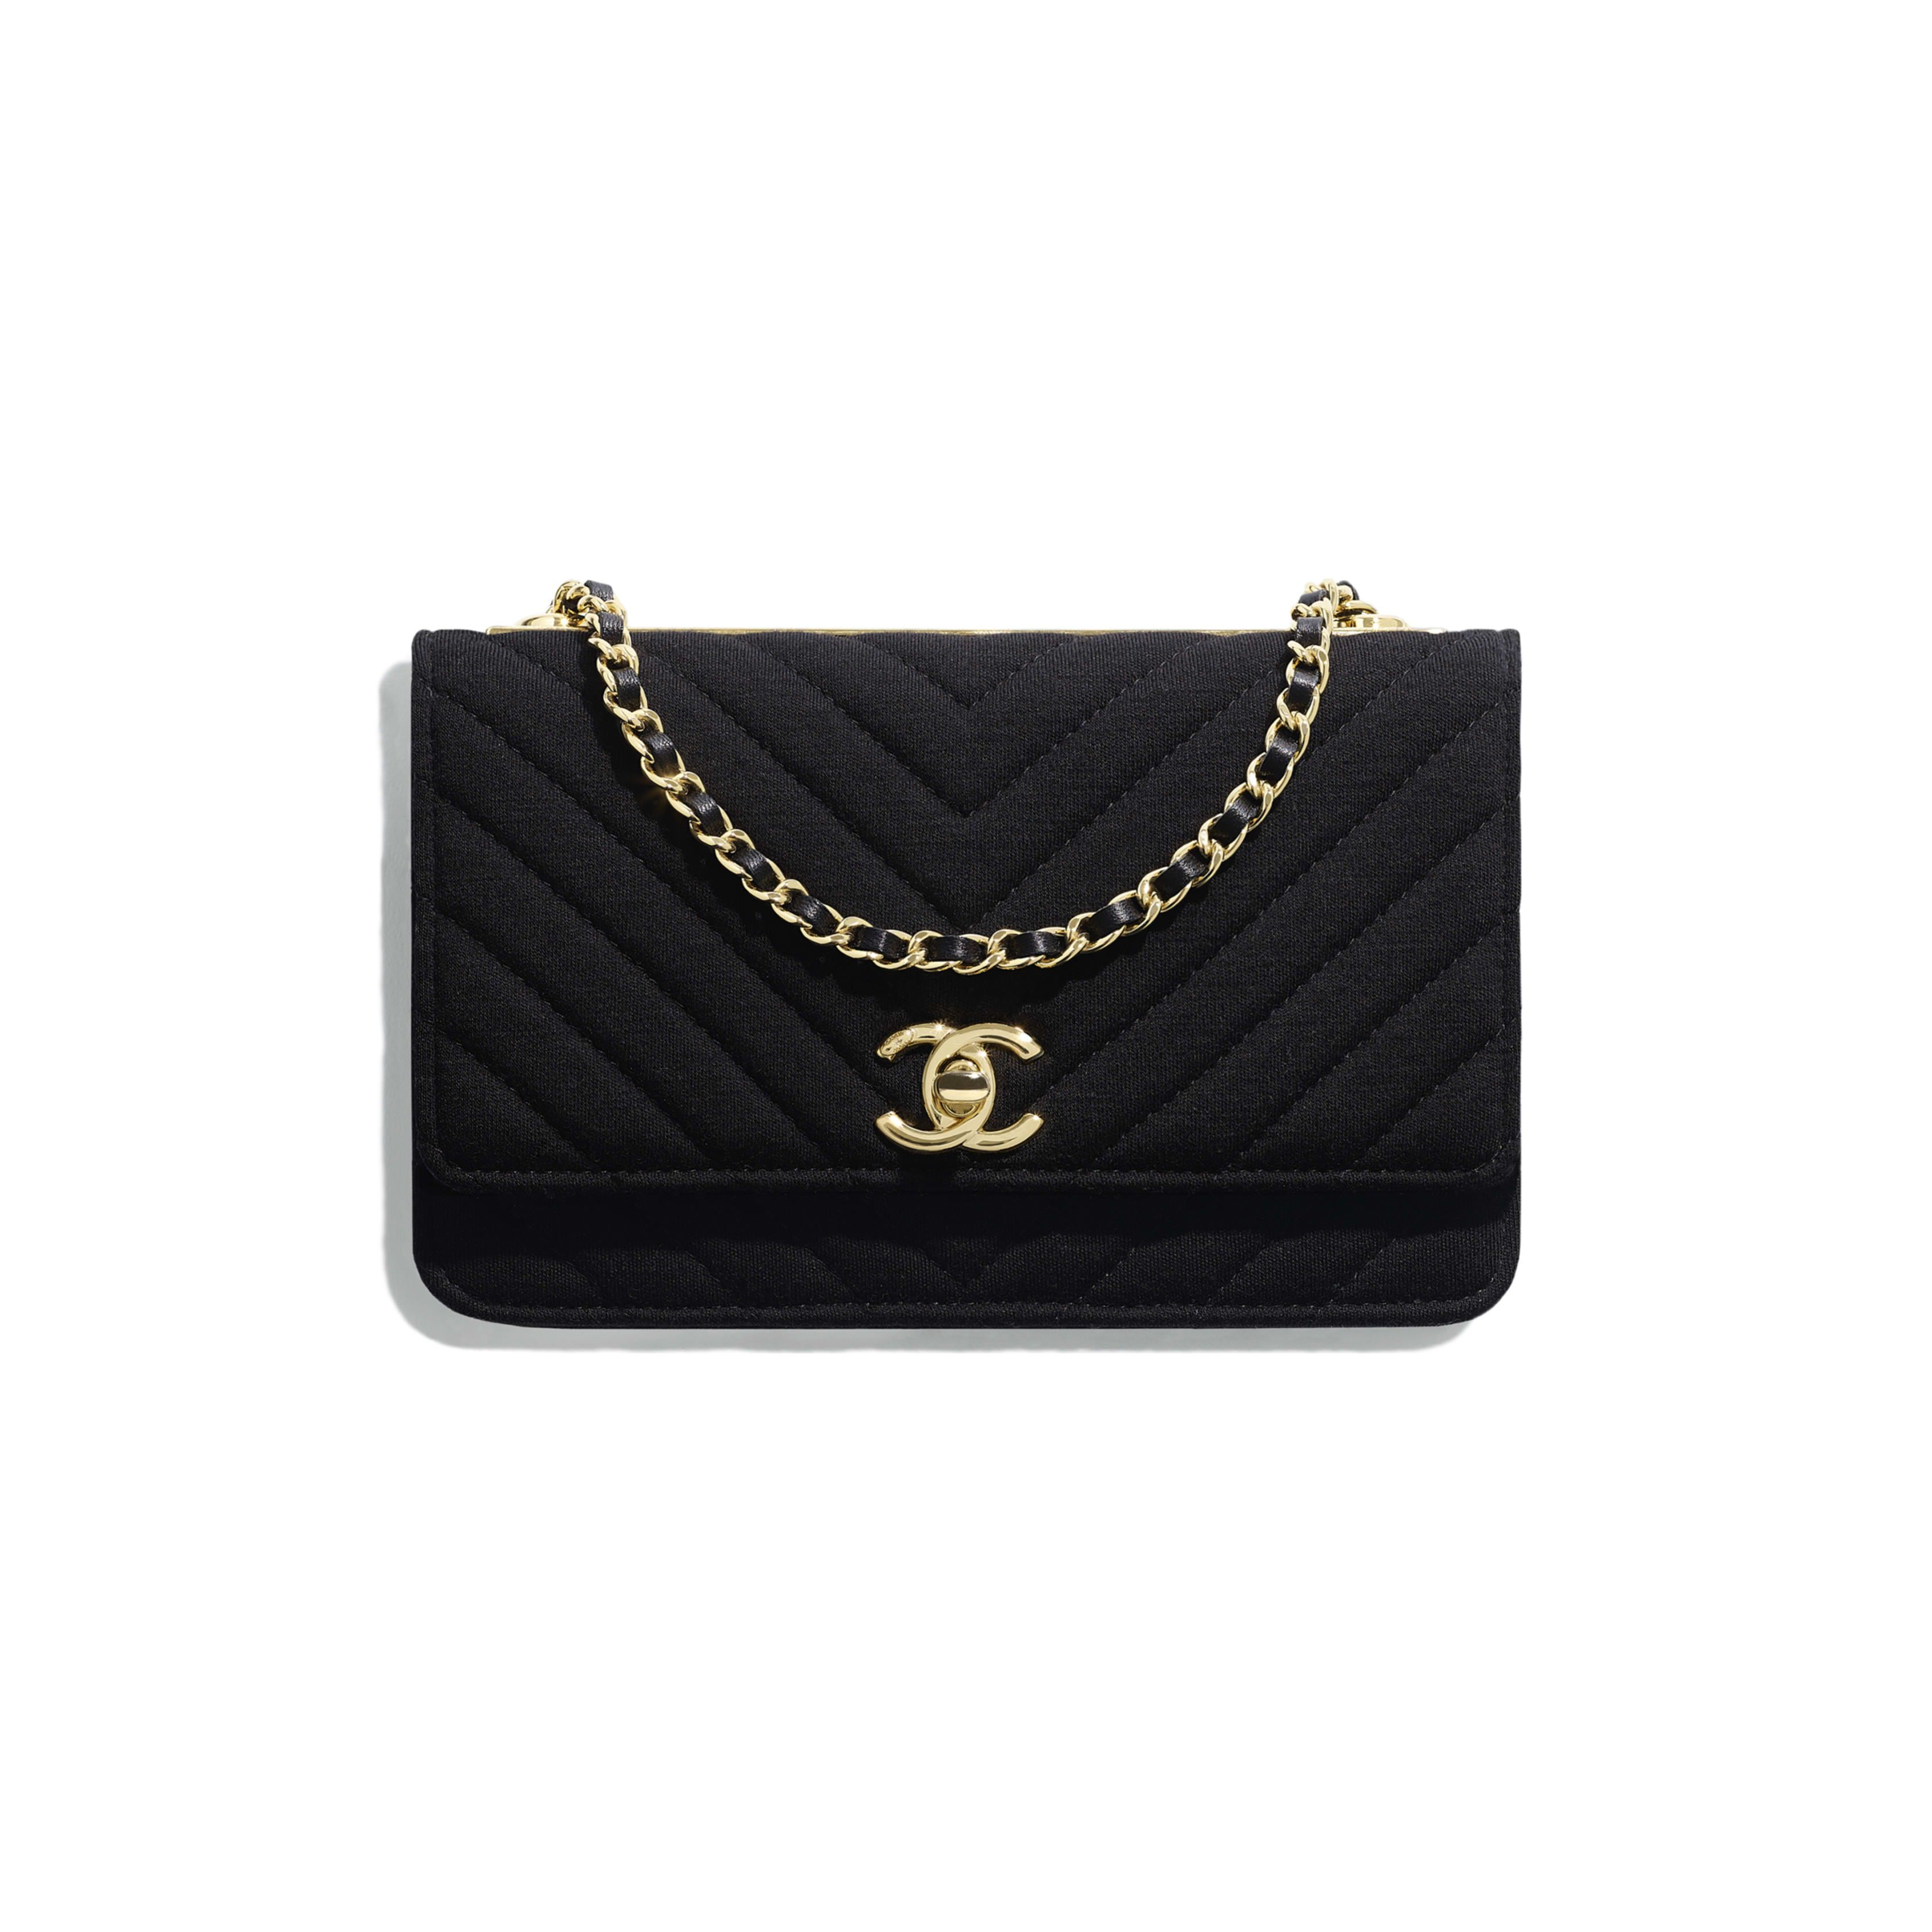 3ba45627bc449 Wallet on Chain - Black - Jersey & Gold-Tone Metal - Default view - see  full sized version